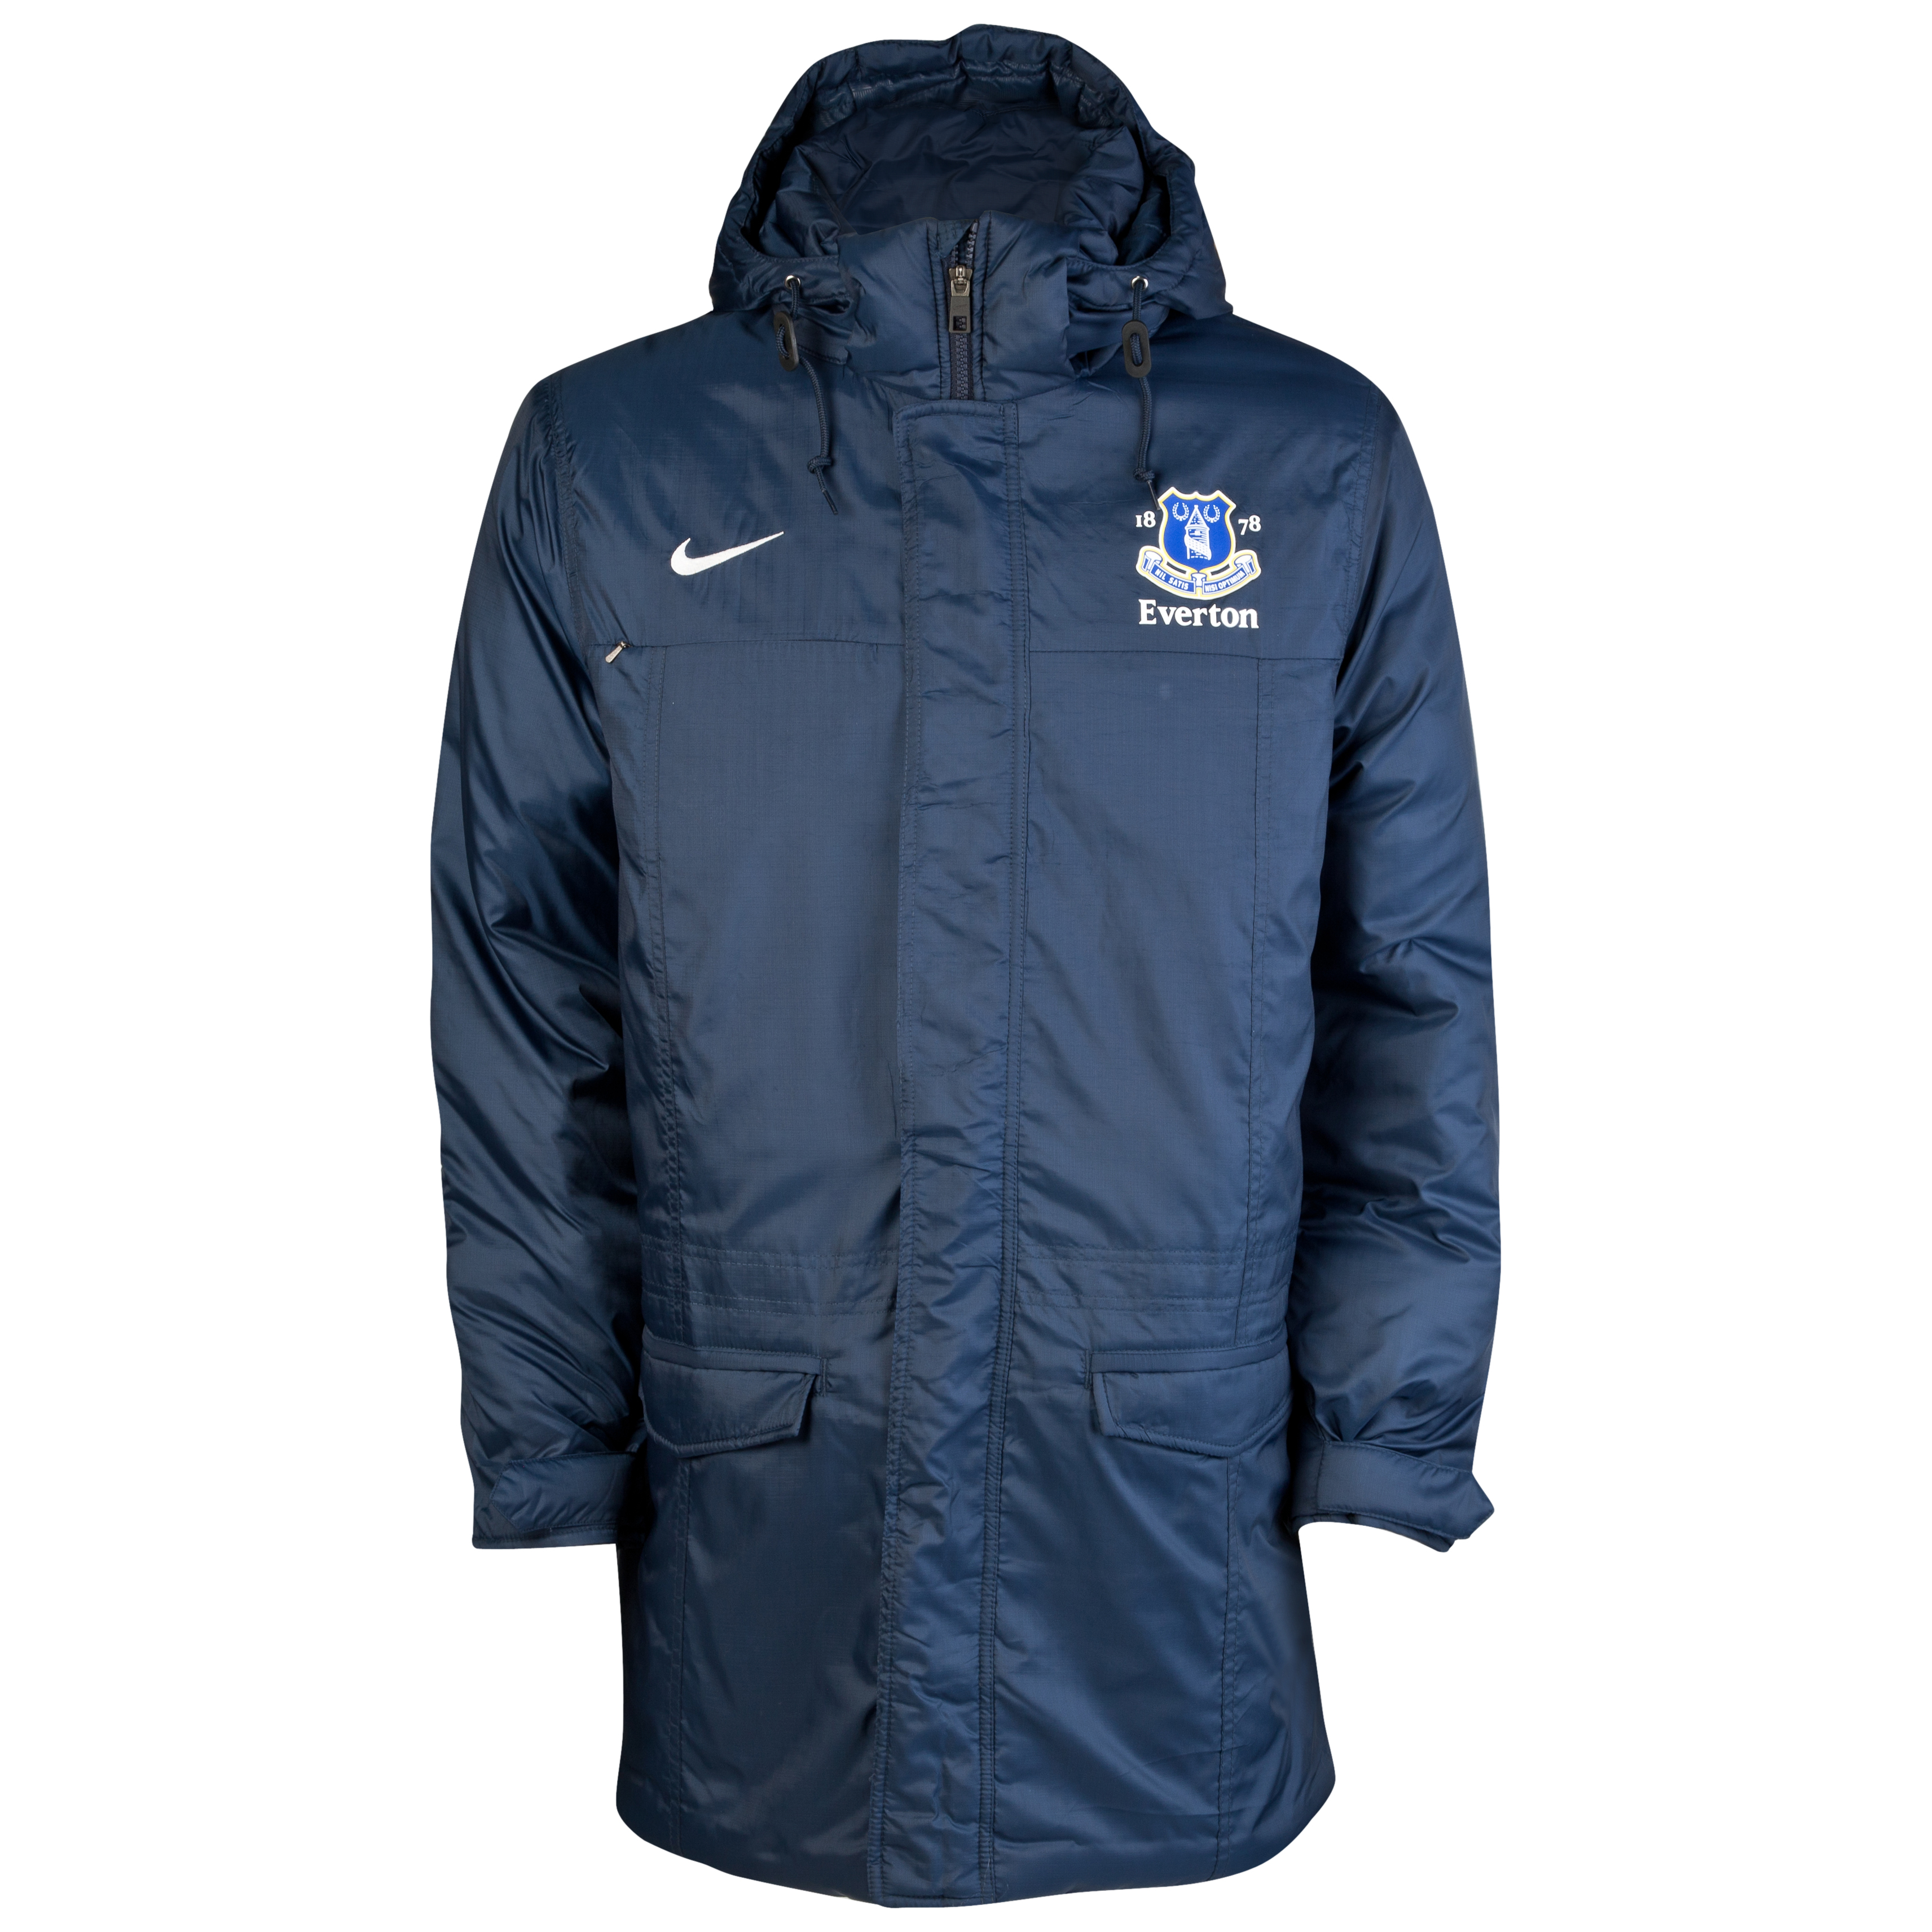 Everton Padded Jacket - Obsidian/White